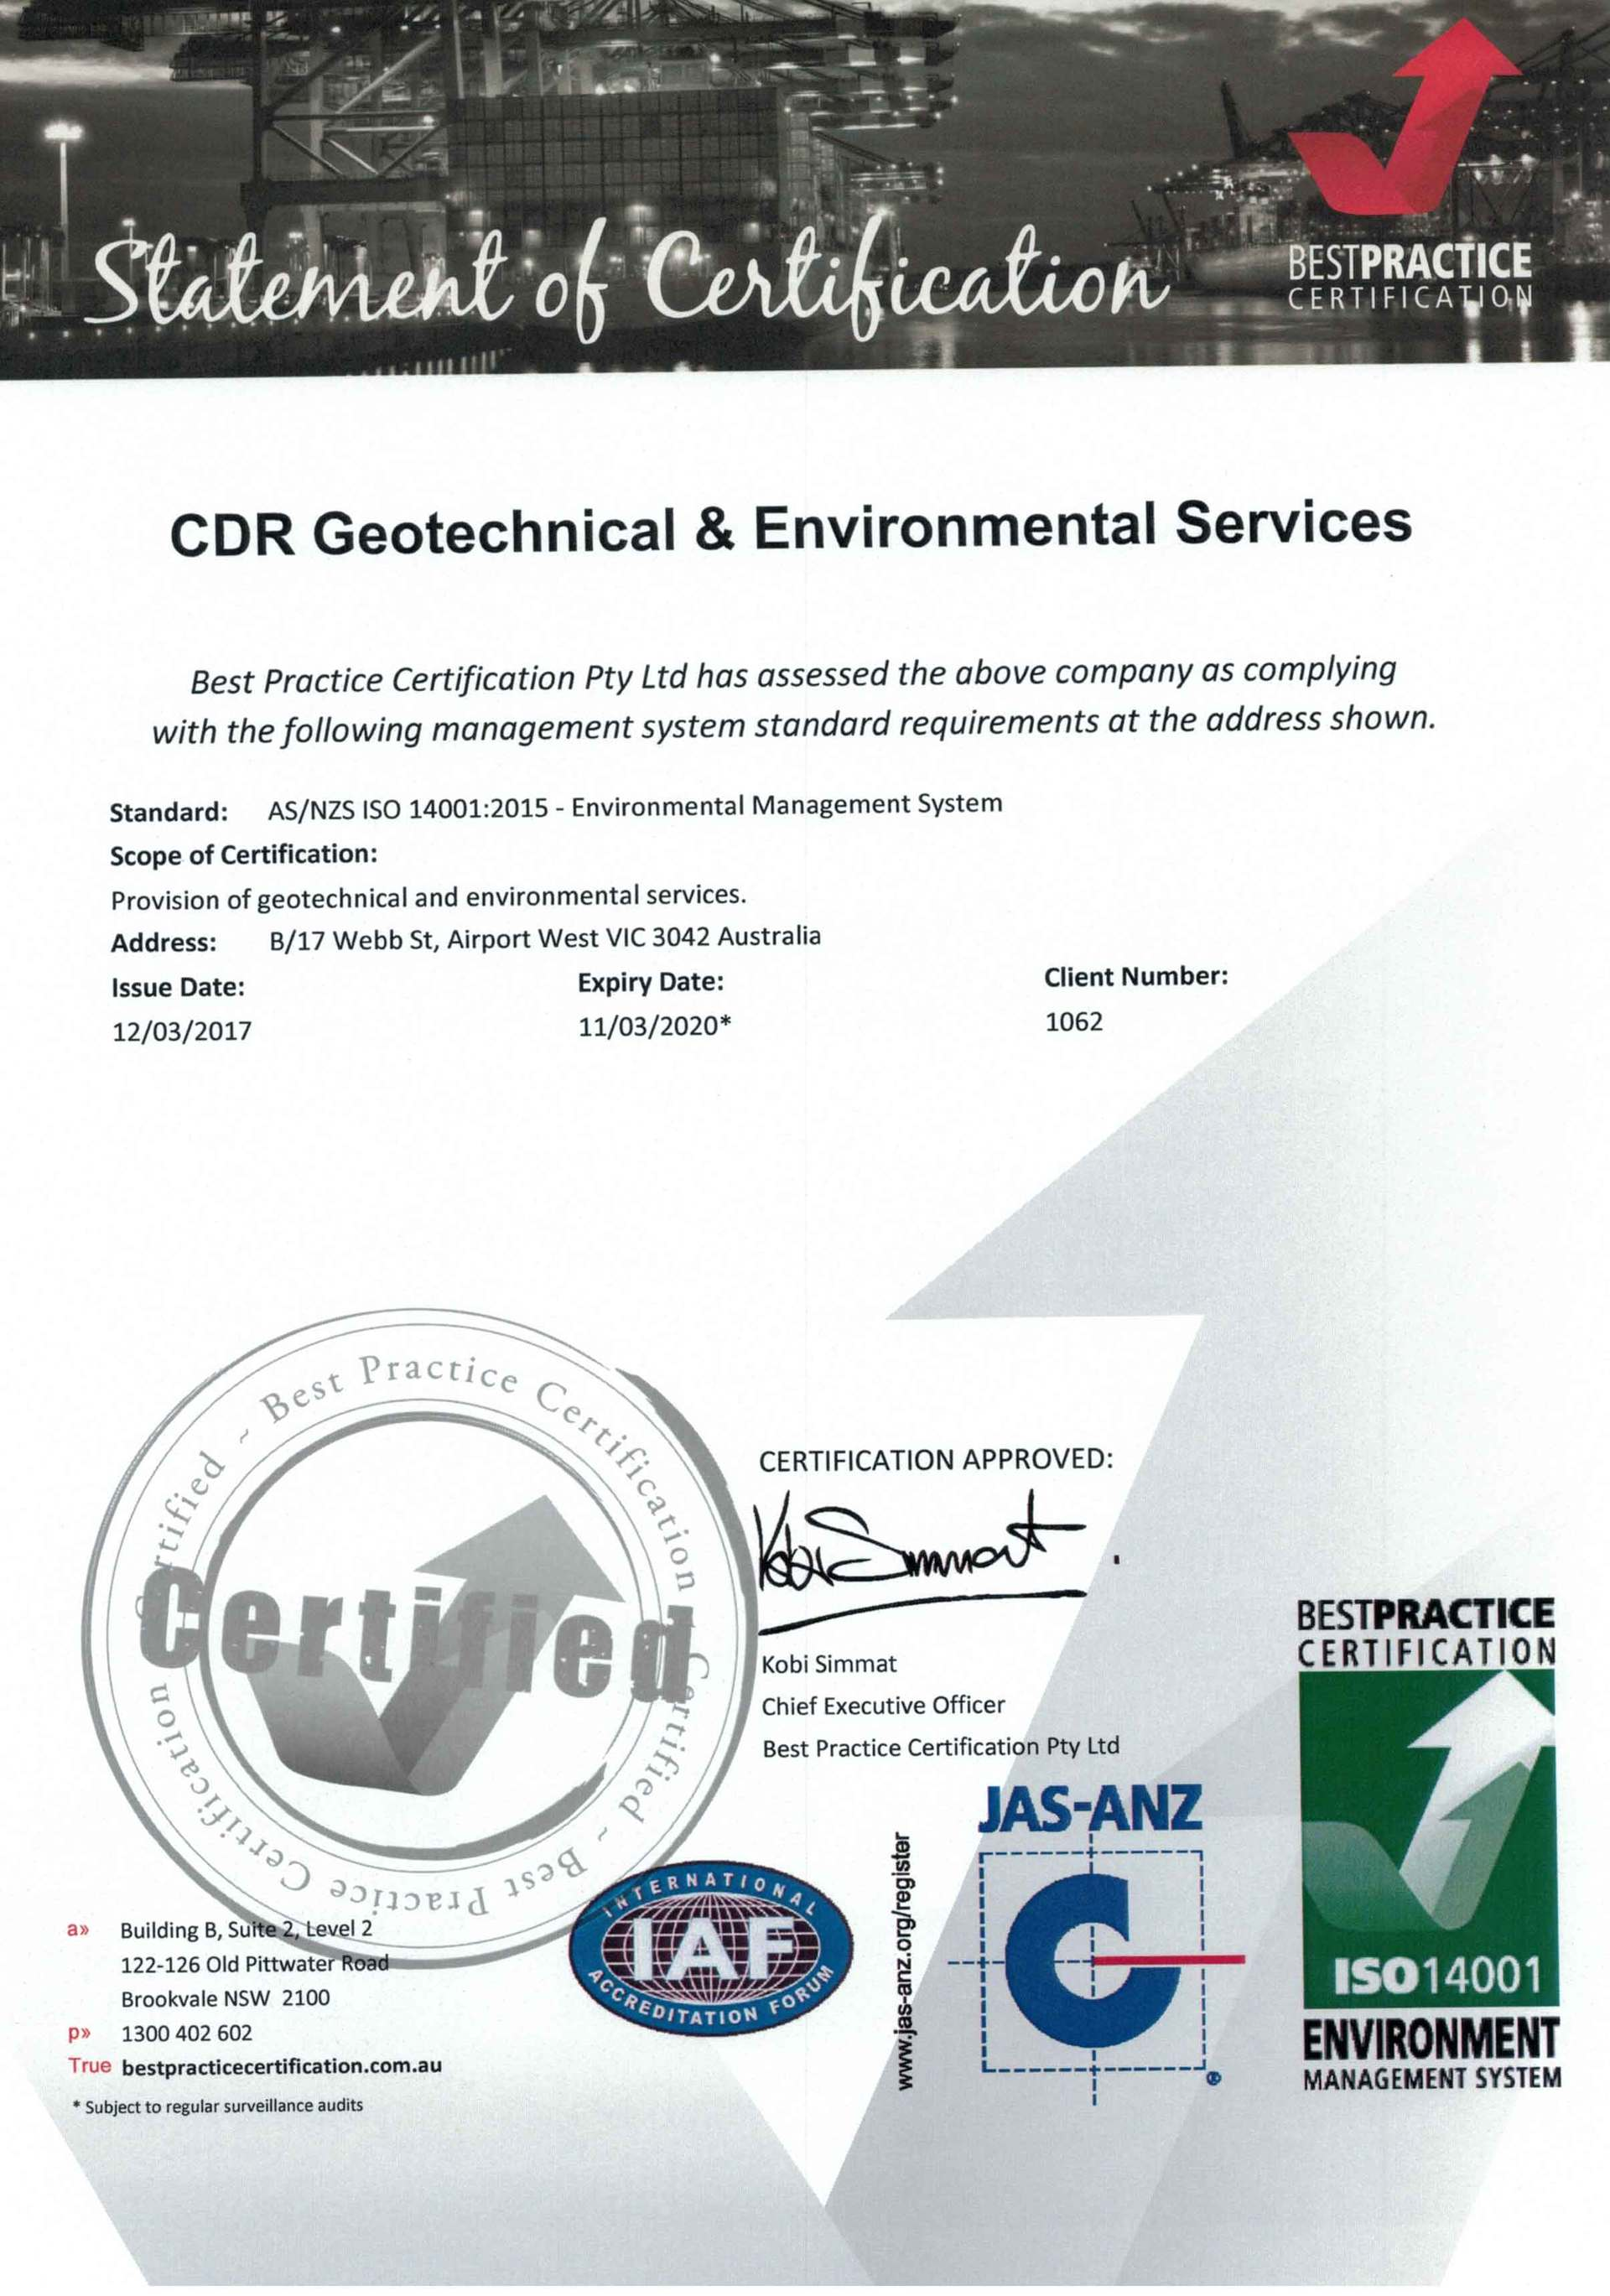 Cdr Geotechnical Environmental Services Accreditation